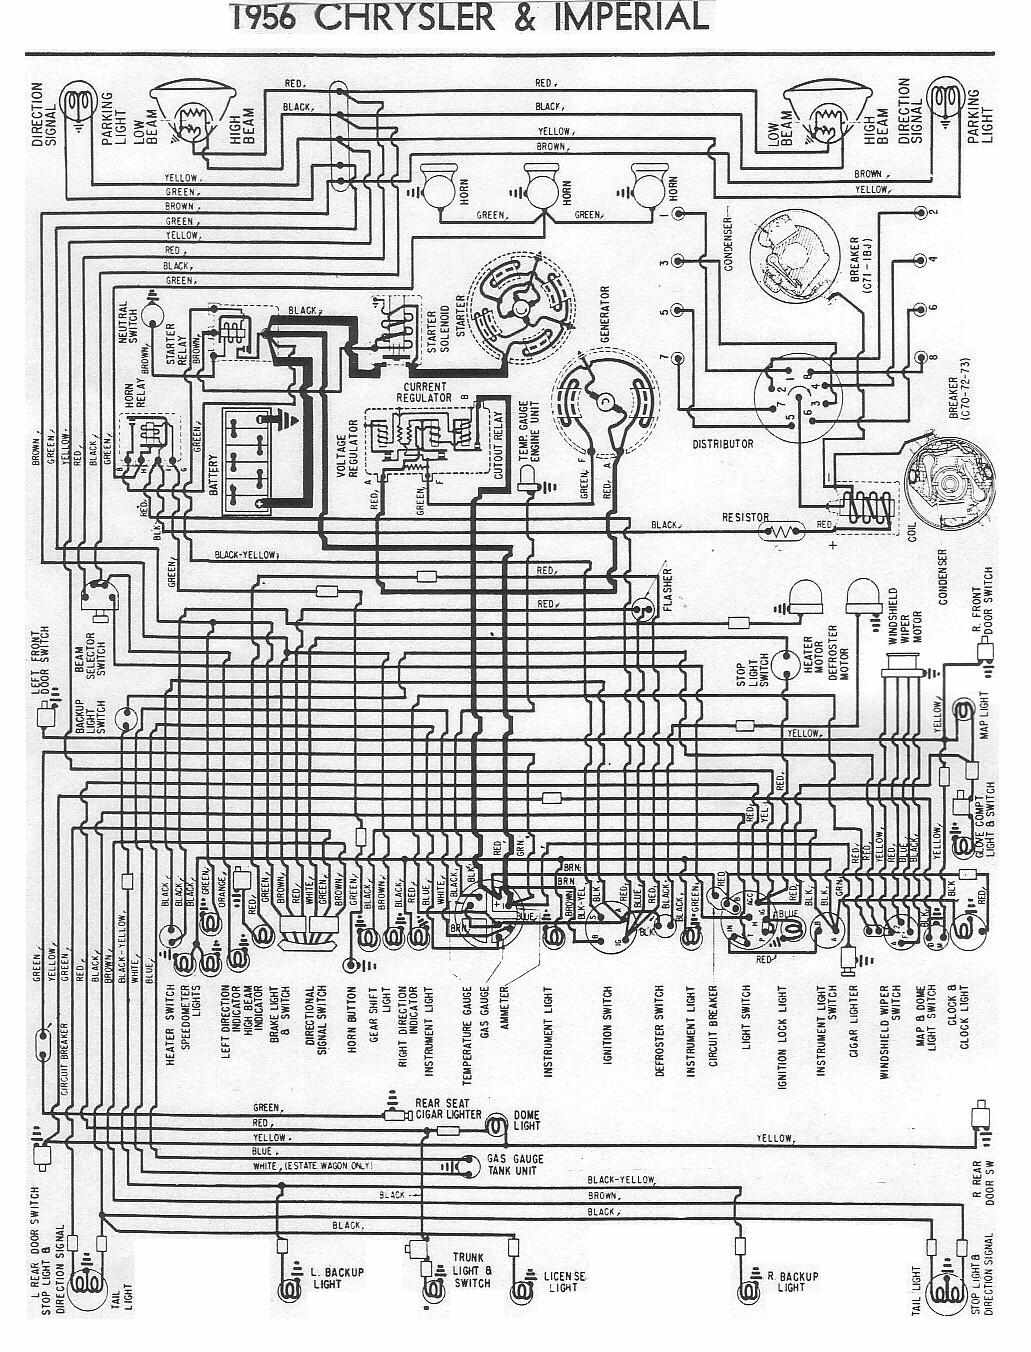 hight resolution of wiring diagram of 1956 chrysler and imperial circuit wiring wiring 1956 chrysler wiring diagram